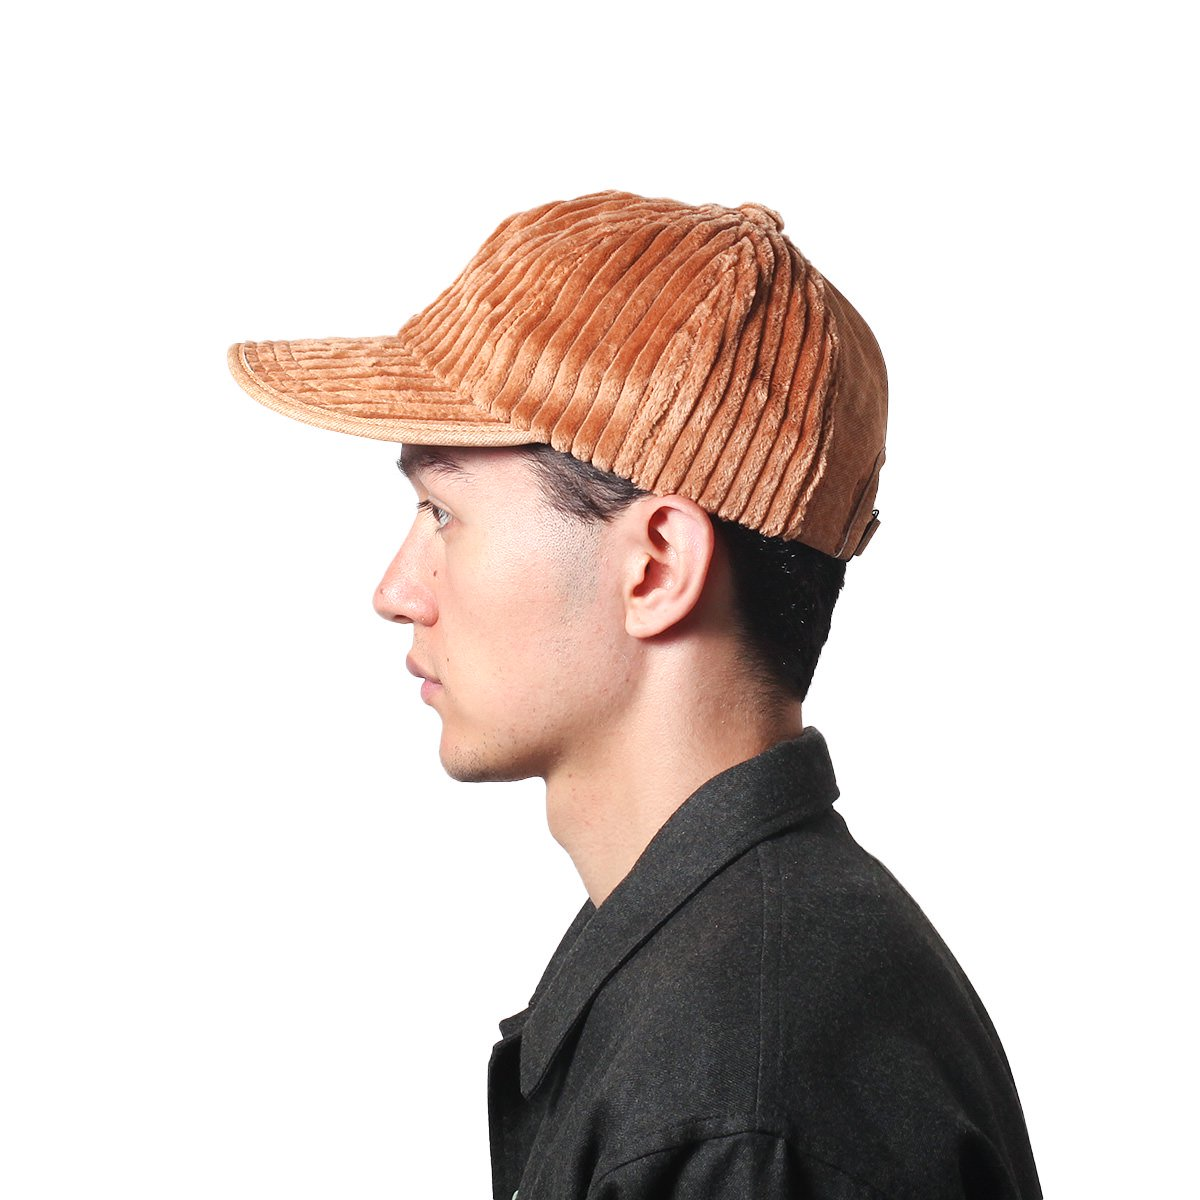 【SALE】LEATHER COMBI CORDUROY 8PANEL CAP 詳細画像8